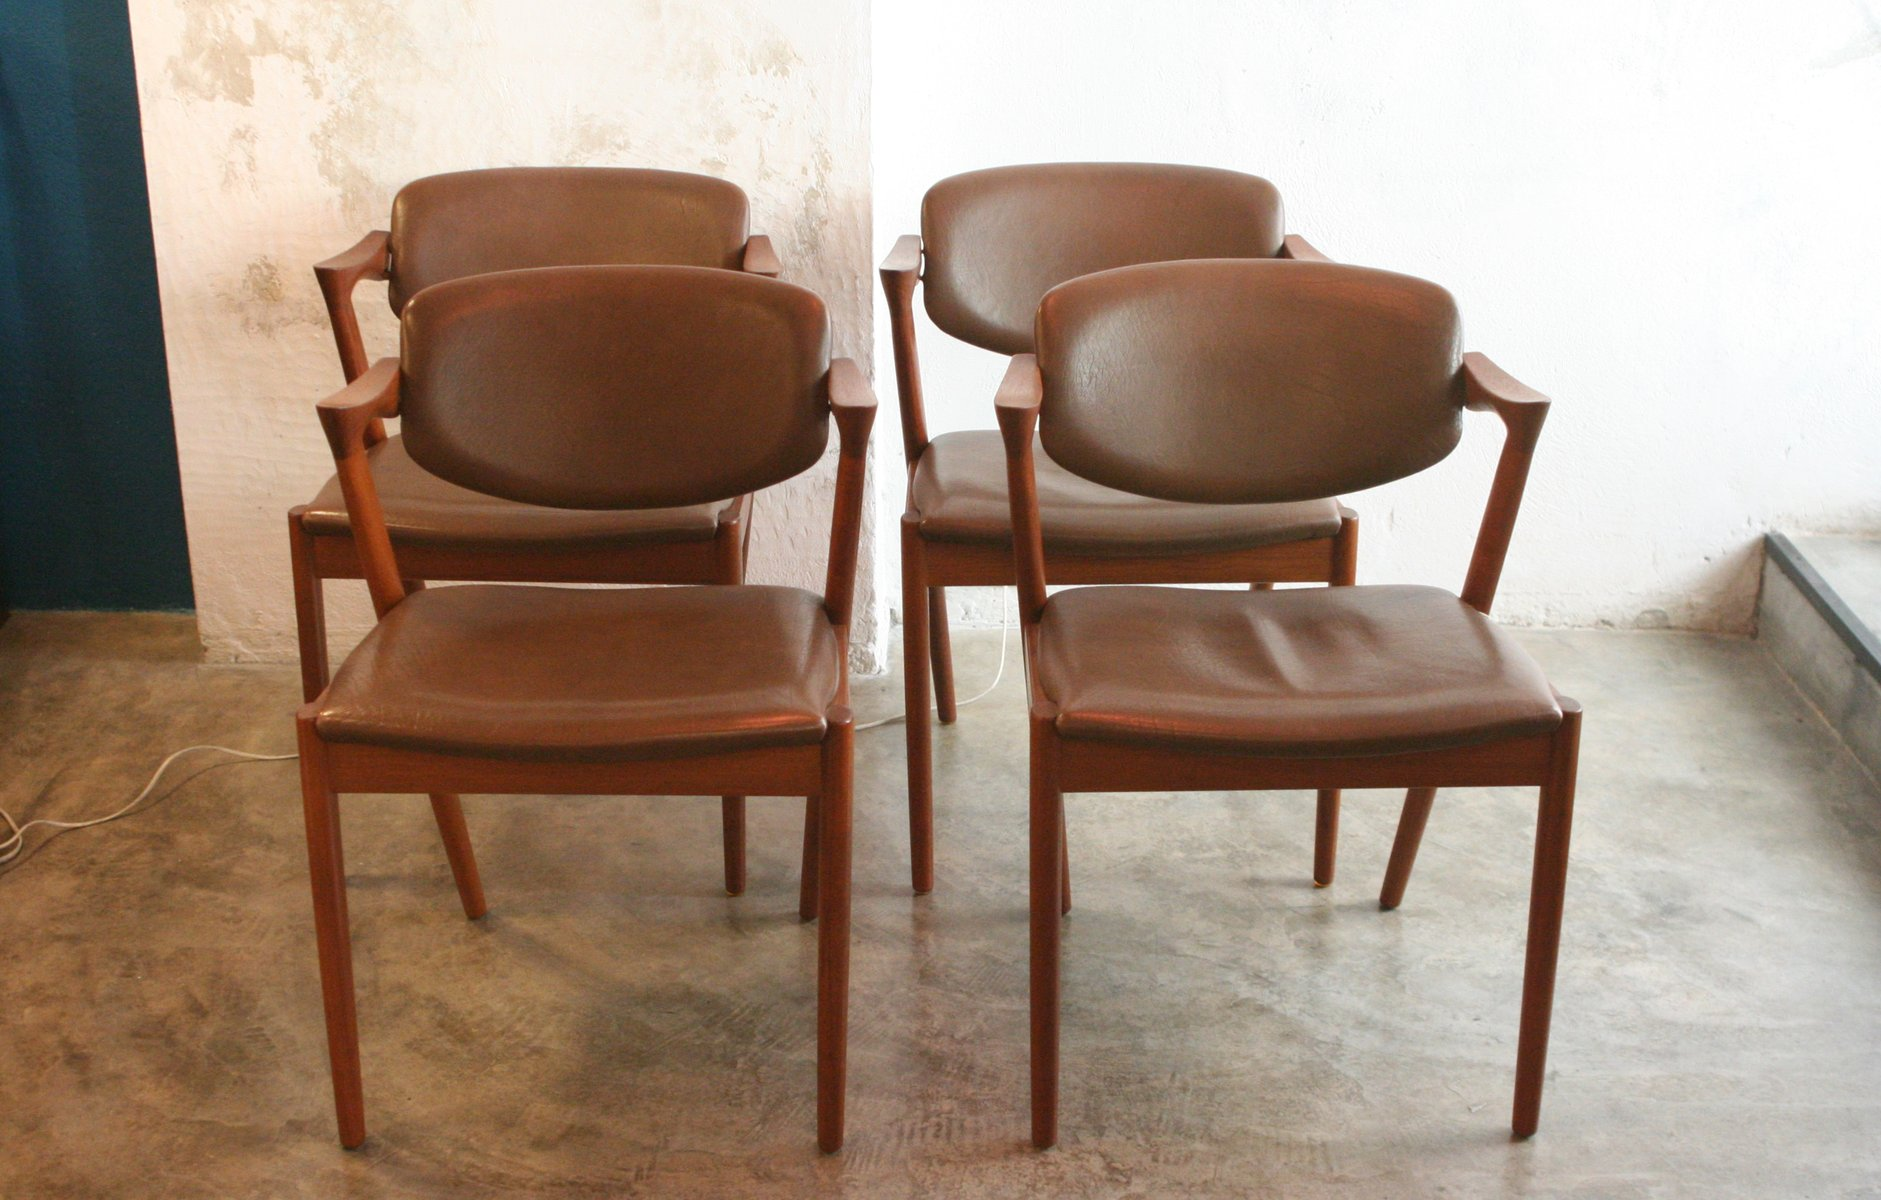 Vintage Model 42 Teak And Leather Chairs By Kai Kristiansen Set Of 4 For Sale At Pamono